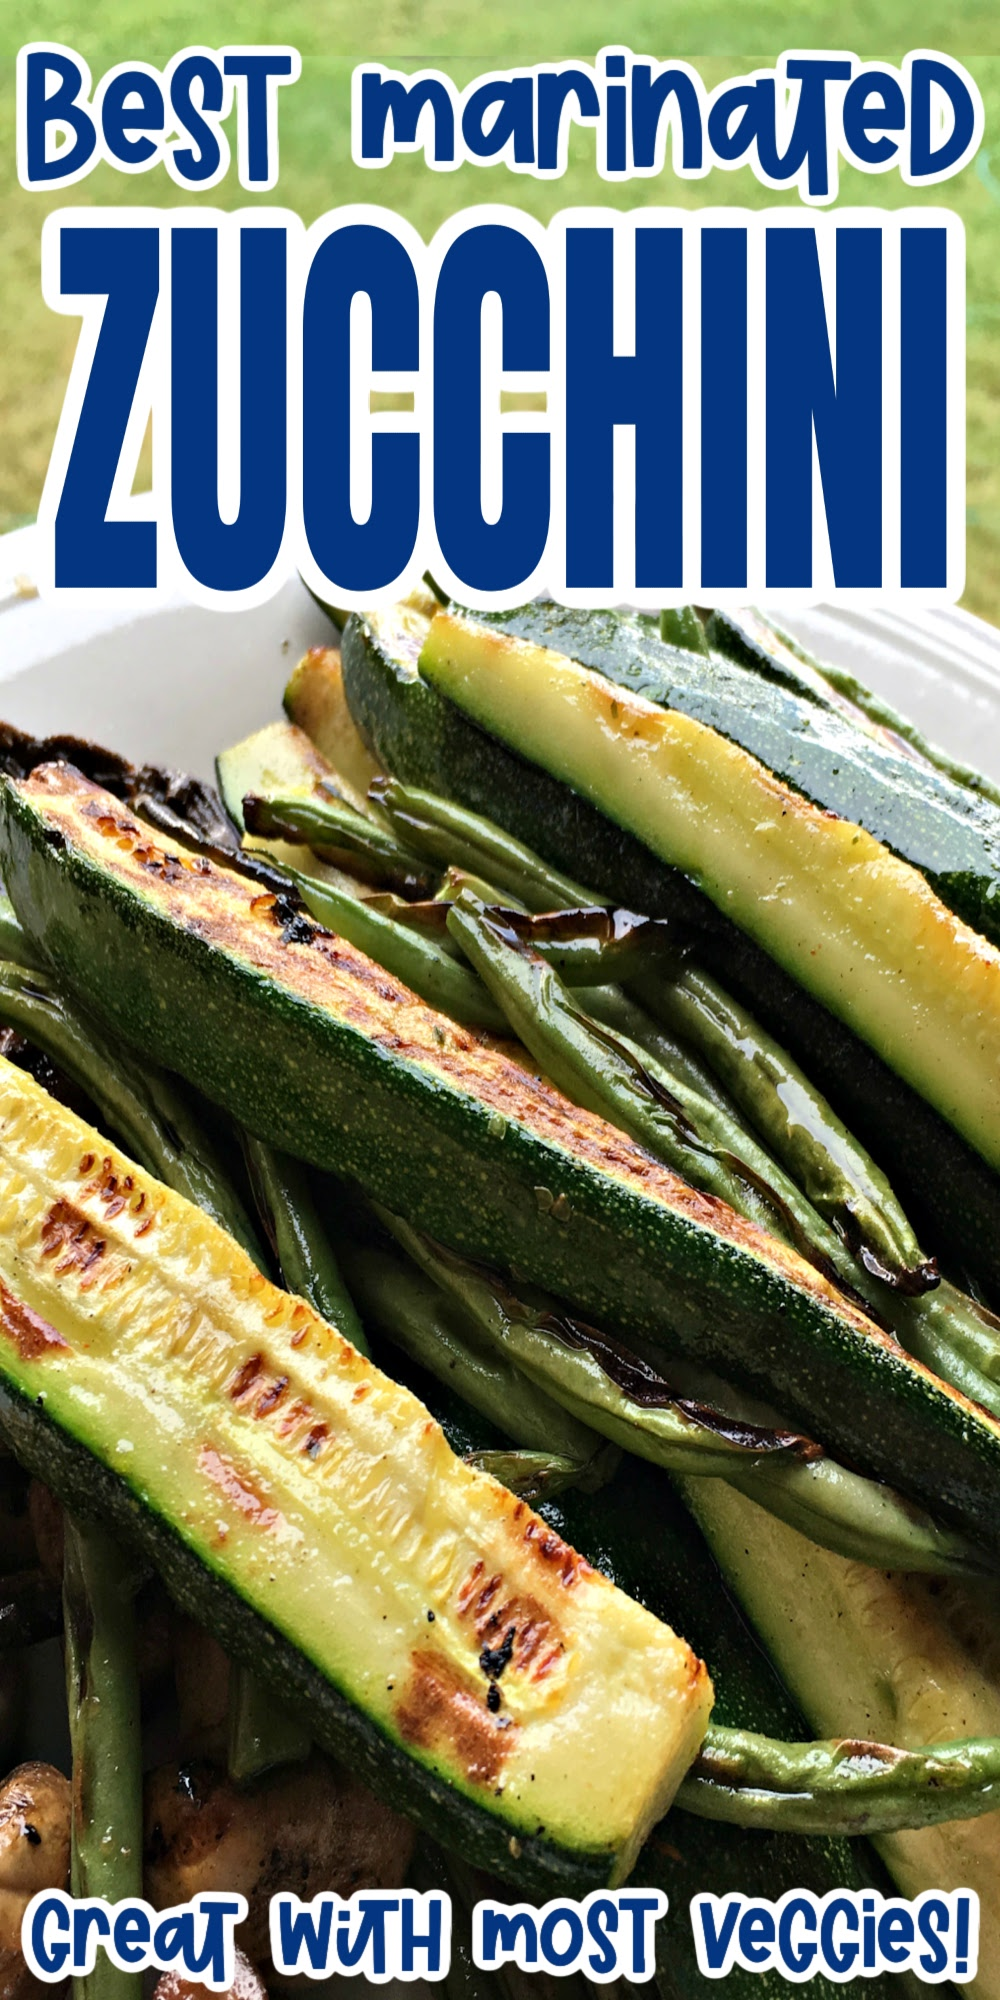 Make the easiest and most delicious zucchini recipe. Works great with other vegetables too. Grilled, air fried, pan fried or even baked.